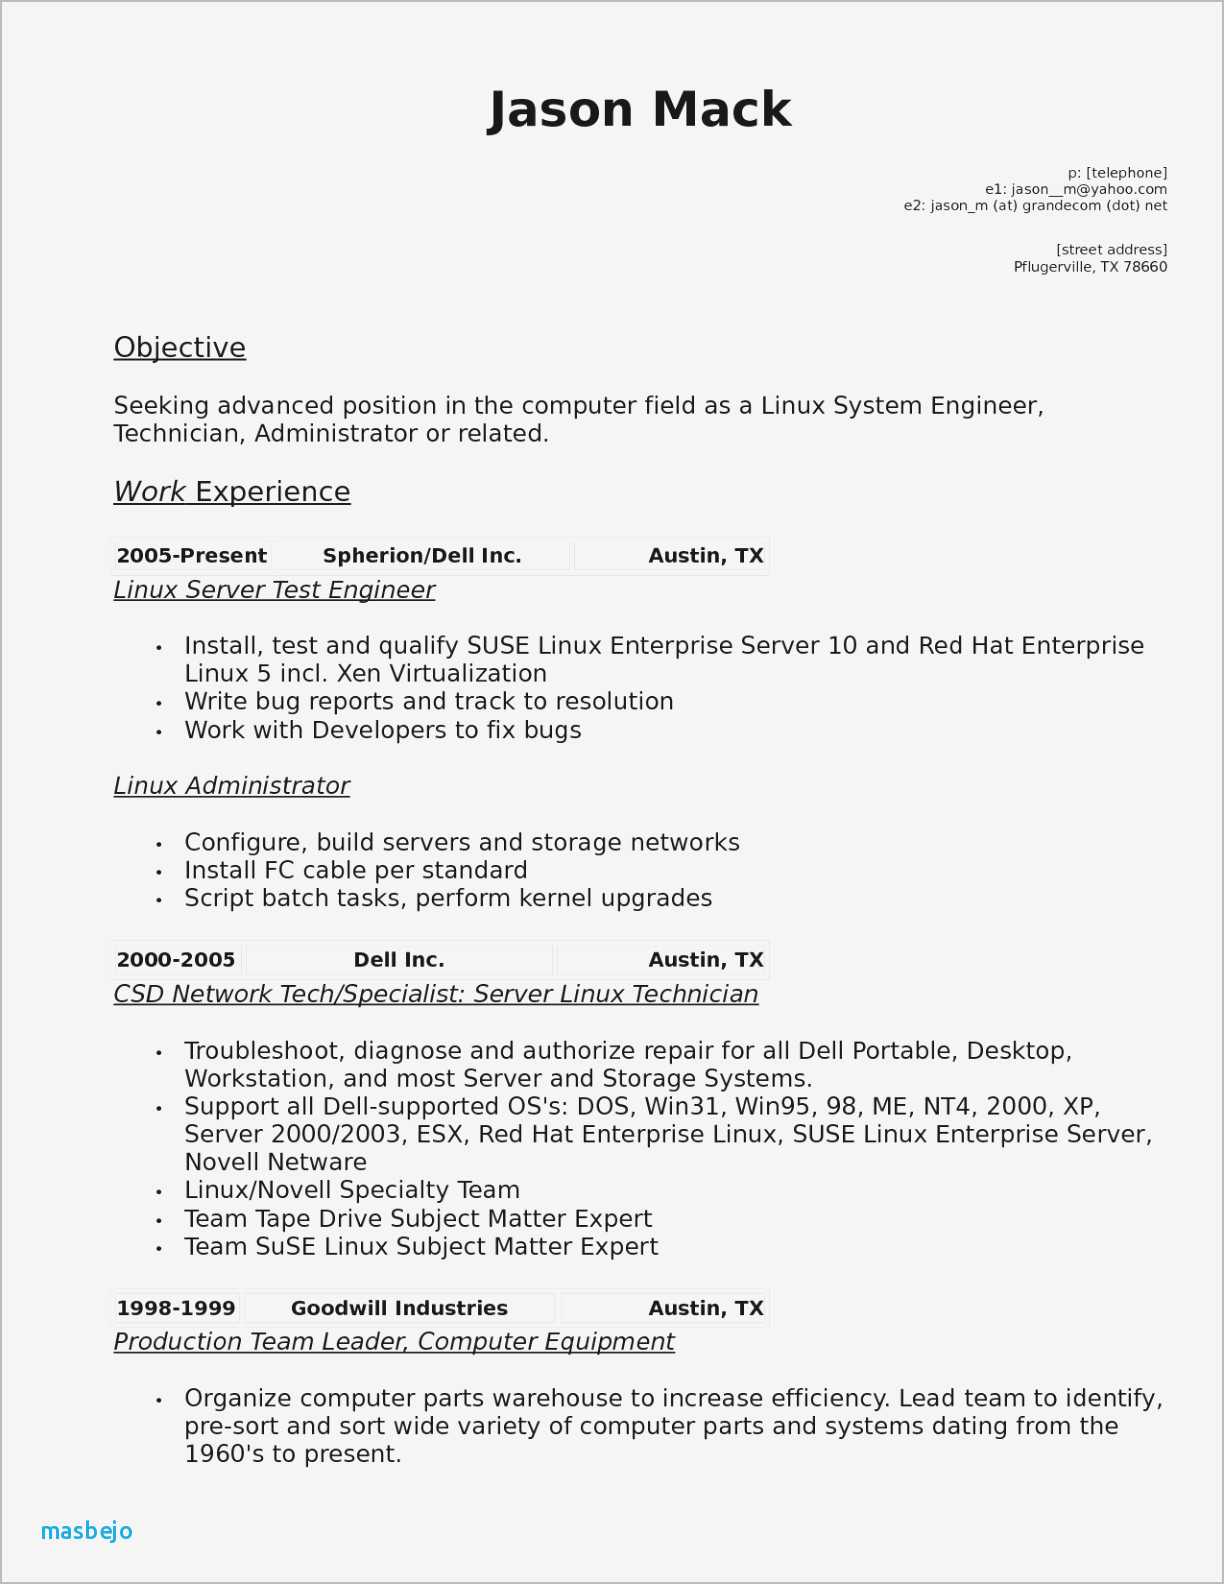 Resume for Pharmacy Technician - Pharmacy Tech Resume Pharmacy Tech Resume Template Fresh Obama